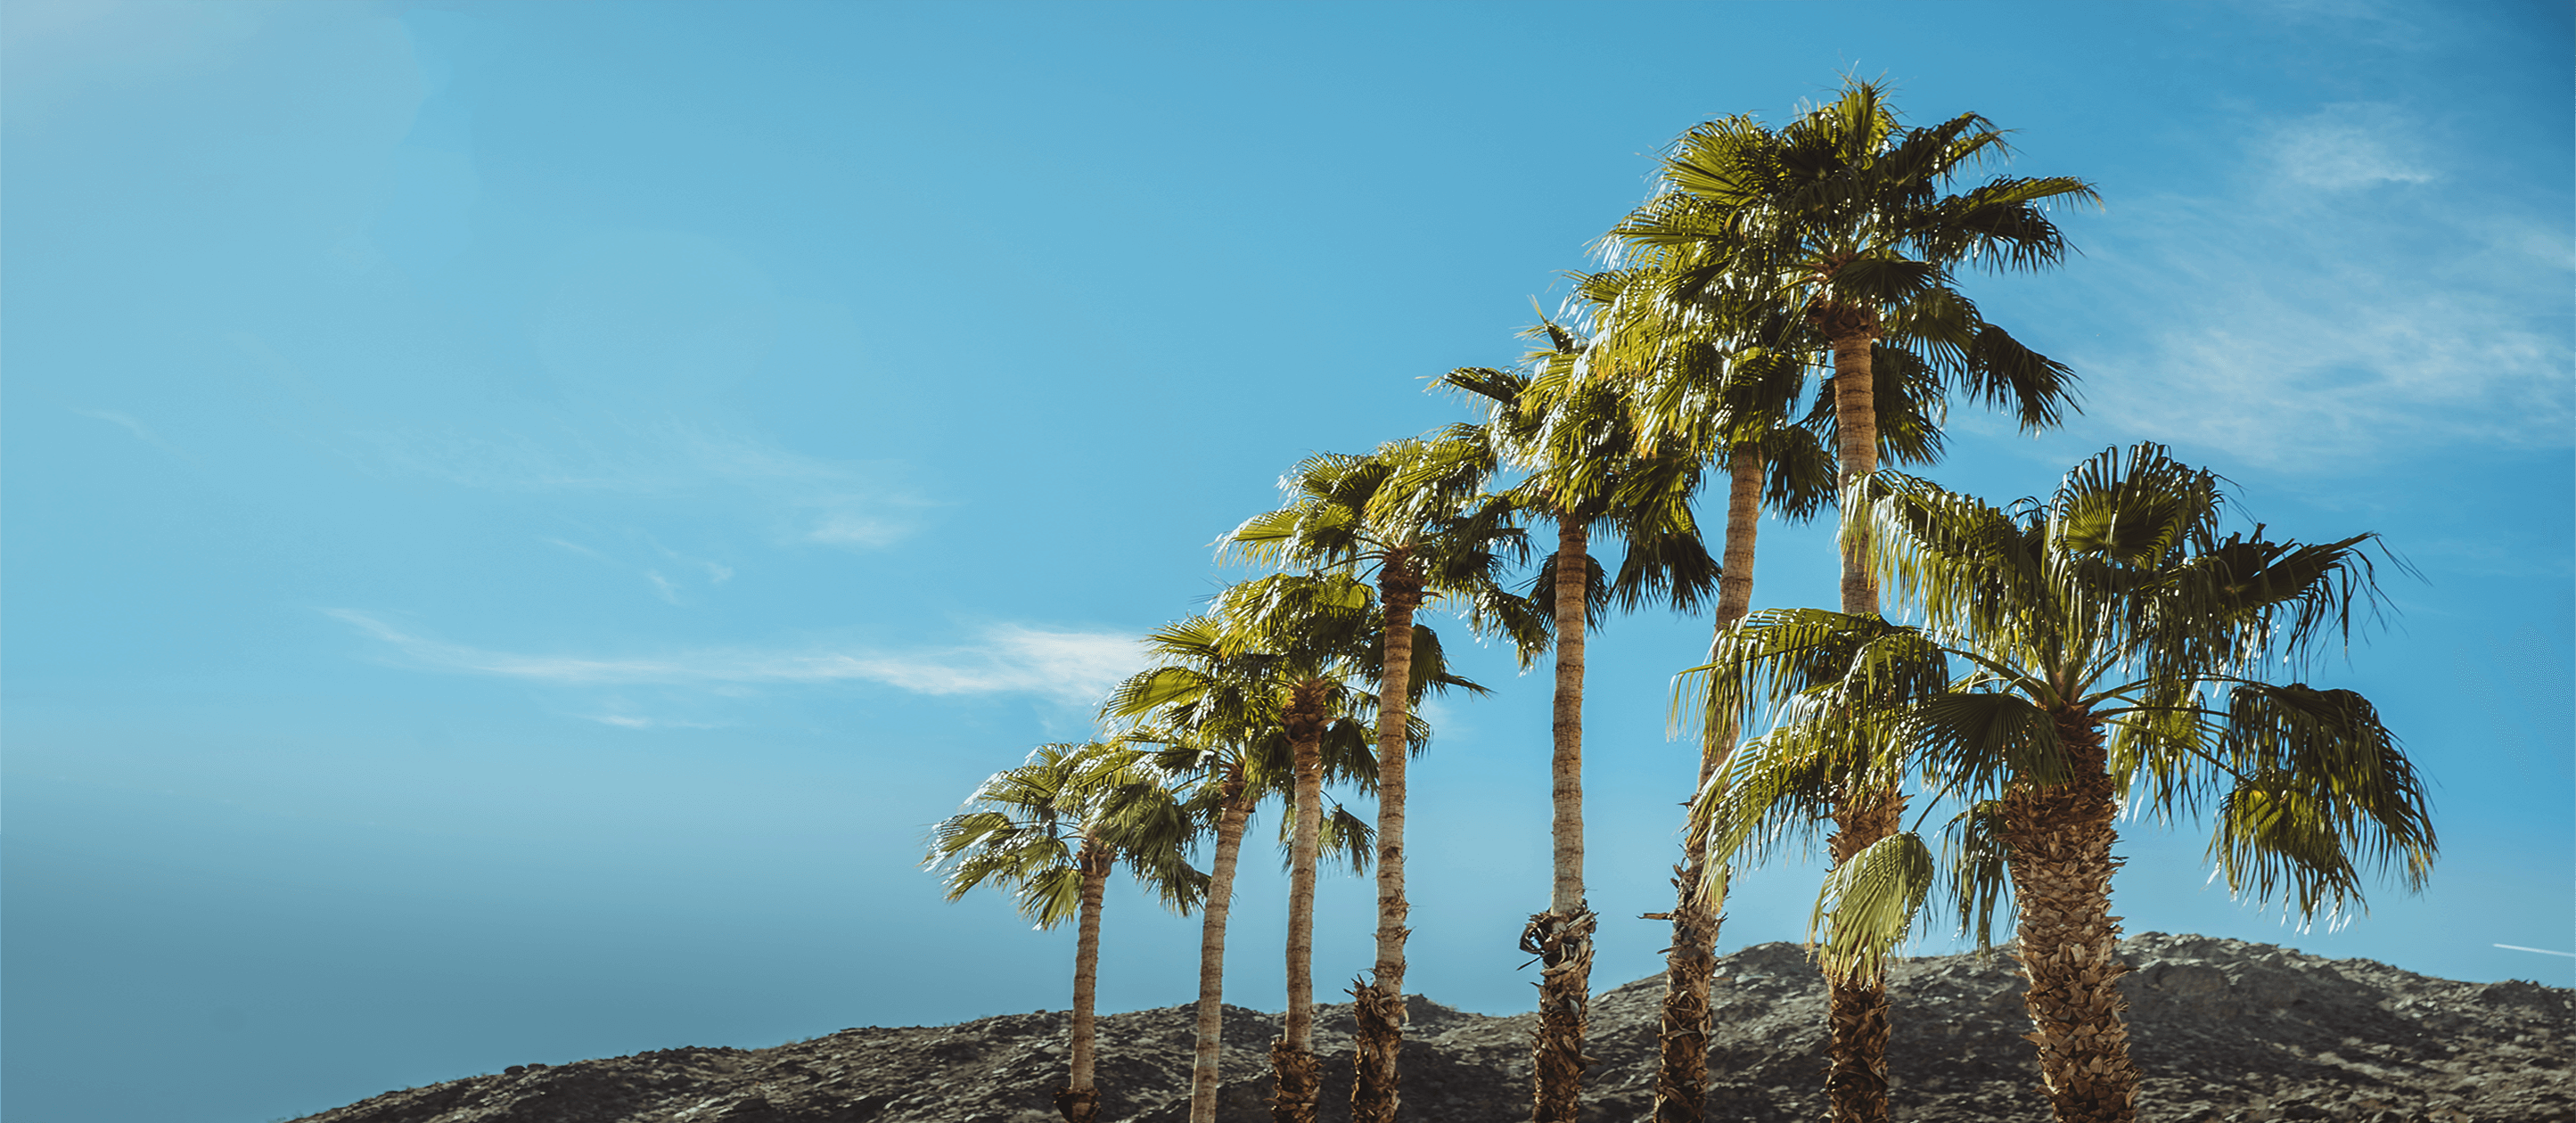 Image of group of palm trees with blue sky